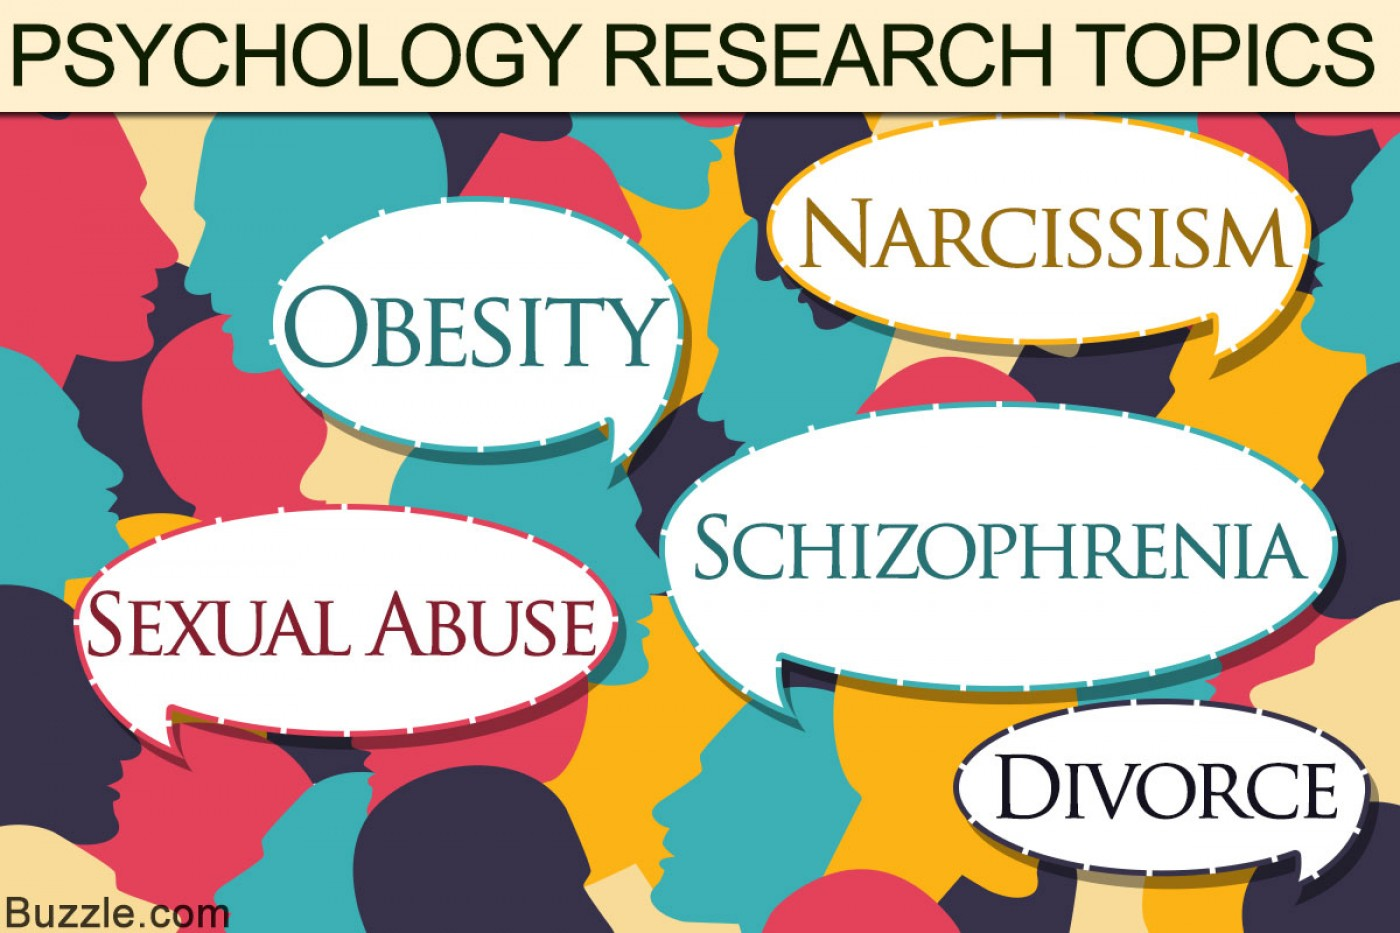 002 Psychology Research Paper Topics List Awesome Topic Ideas 1400